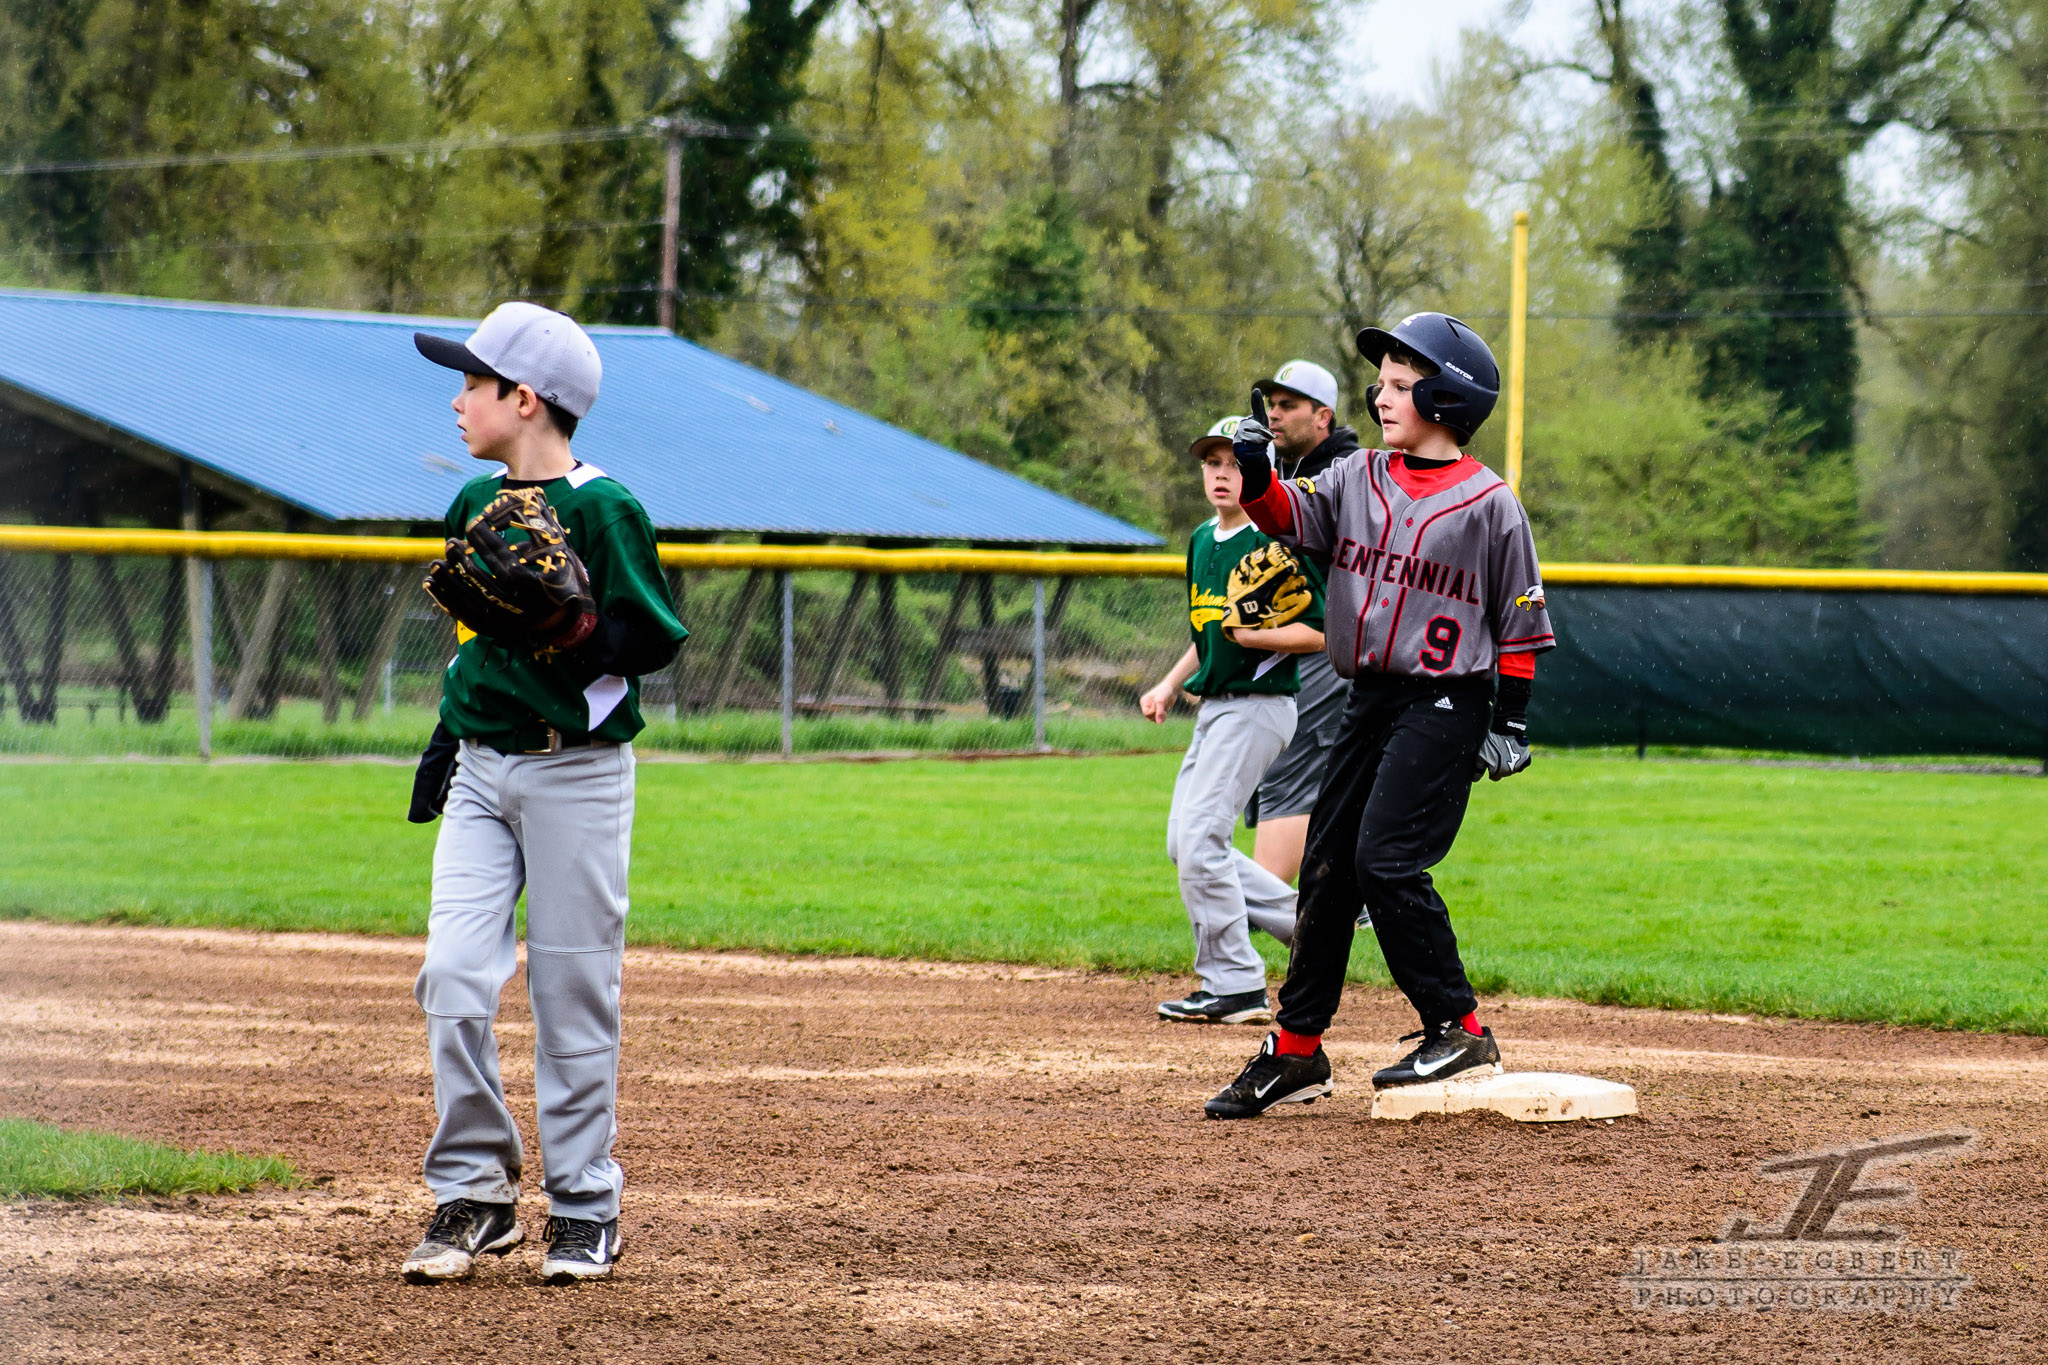 FB - 2014-04-05 - GreenSox - 19388.jpg